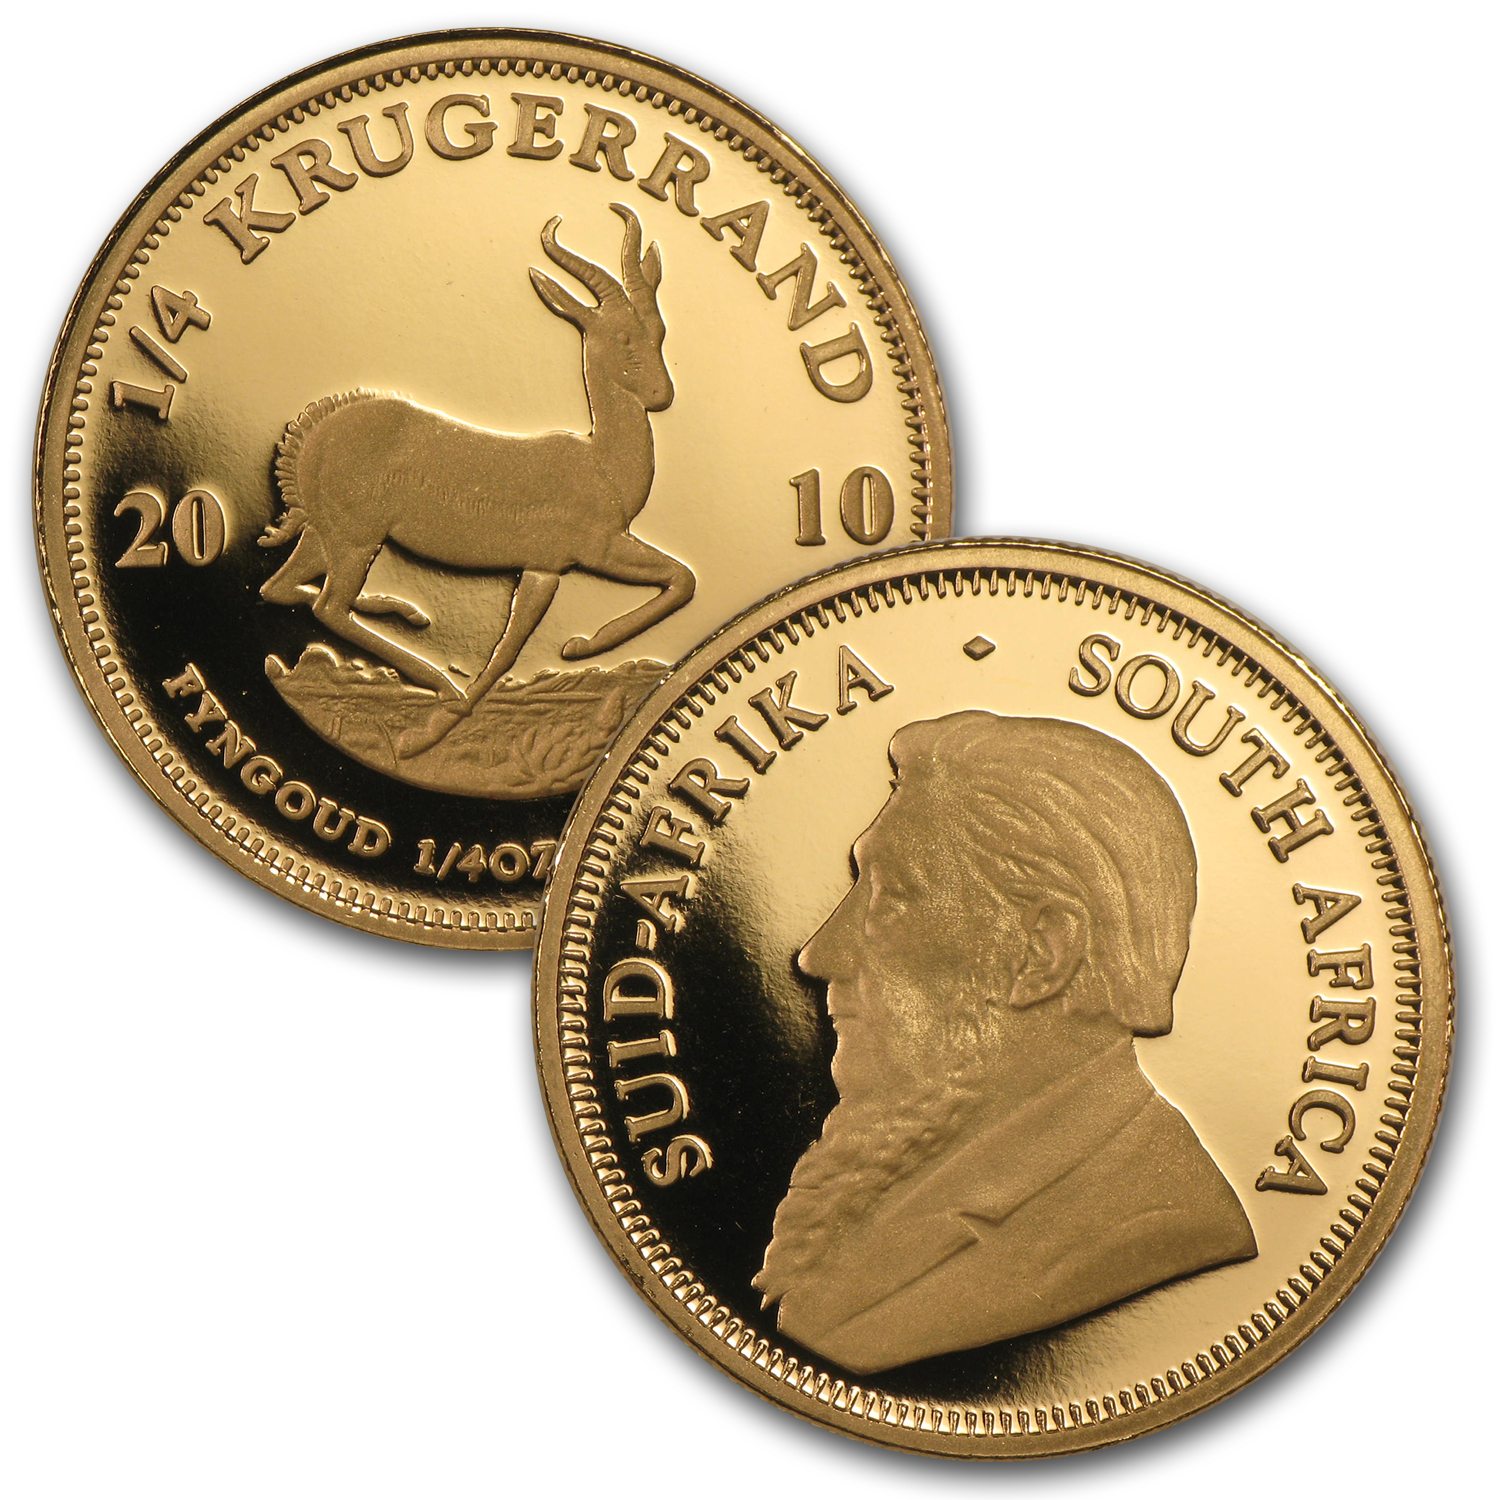 2010 South Africa 4-Coin Gold Krugerrand Frac. Set (w/Box & COA)